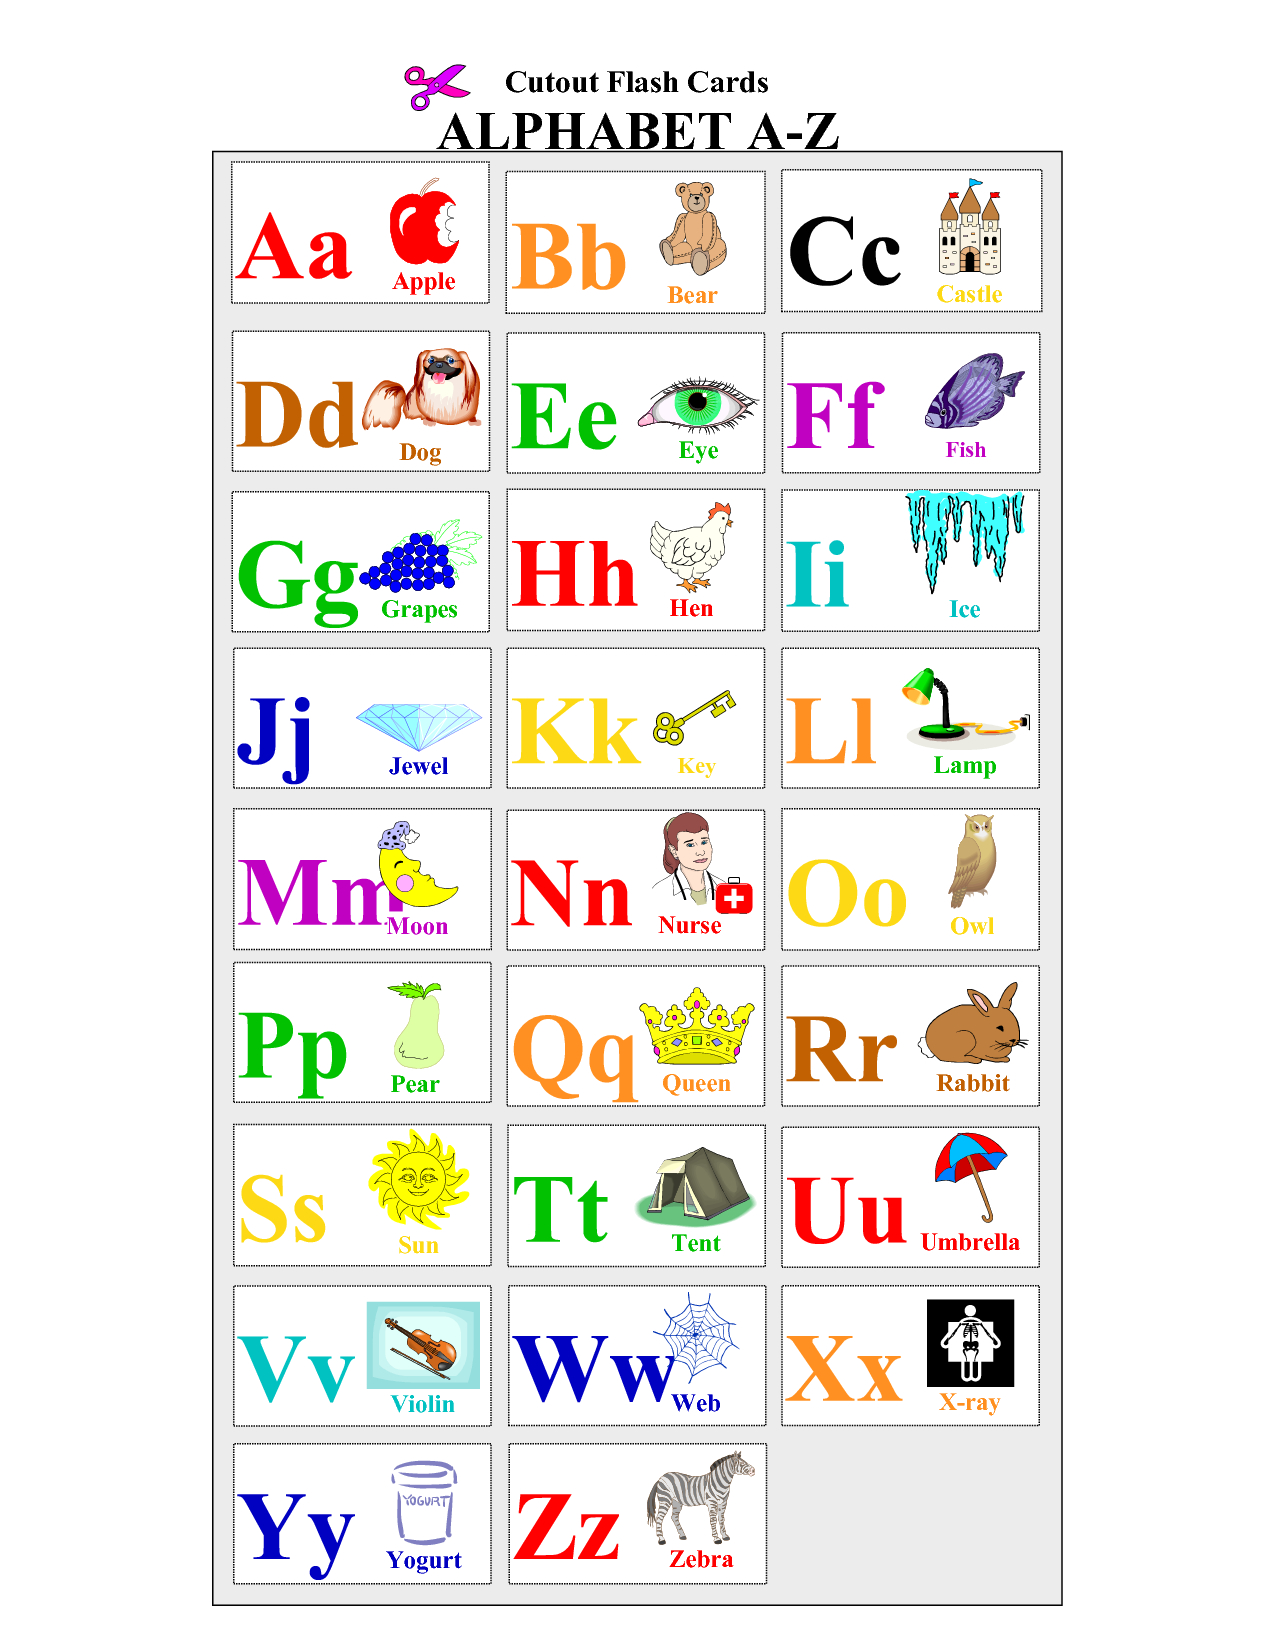 Alphabet-Flash-Cards-To-Print - Coloring Pages For Adults,coloring - Free Printable Alphabet Cards With Pictures